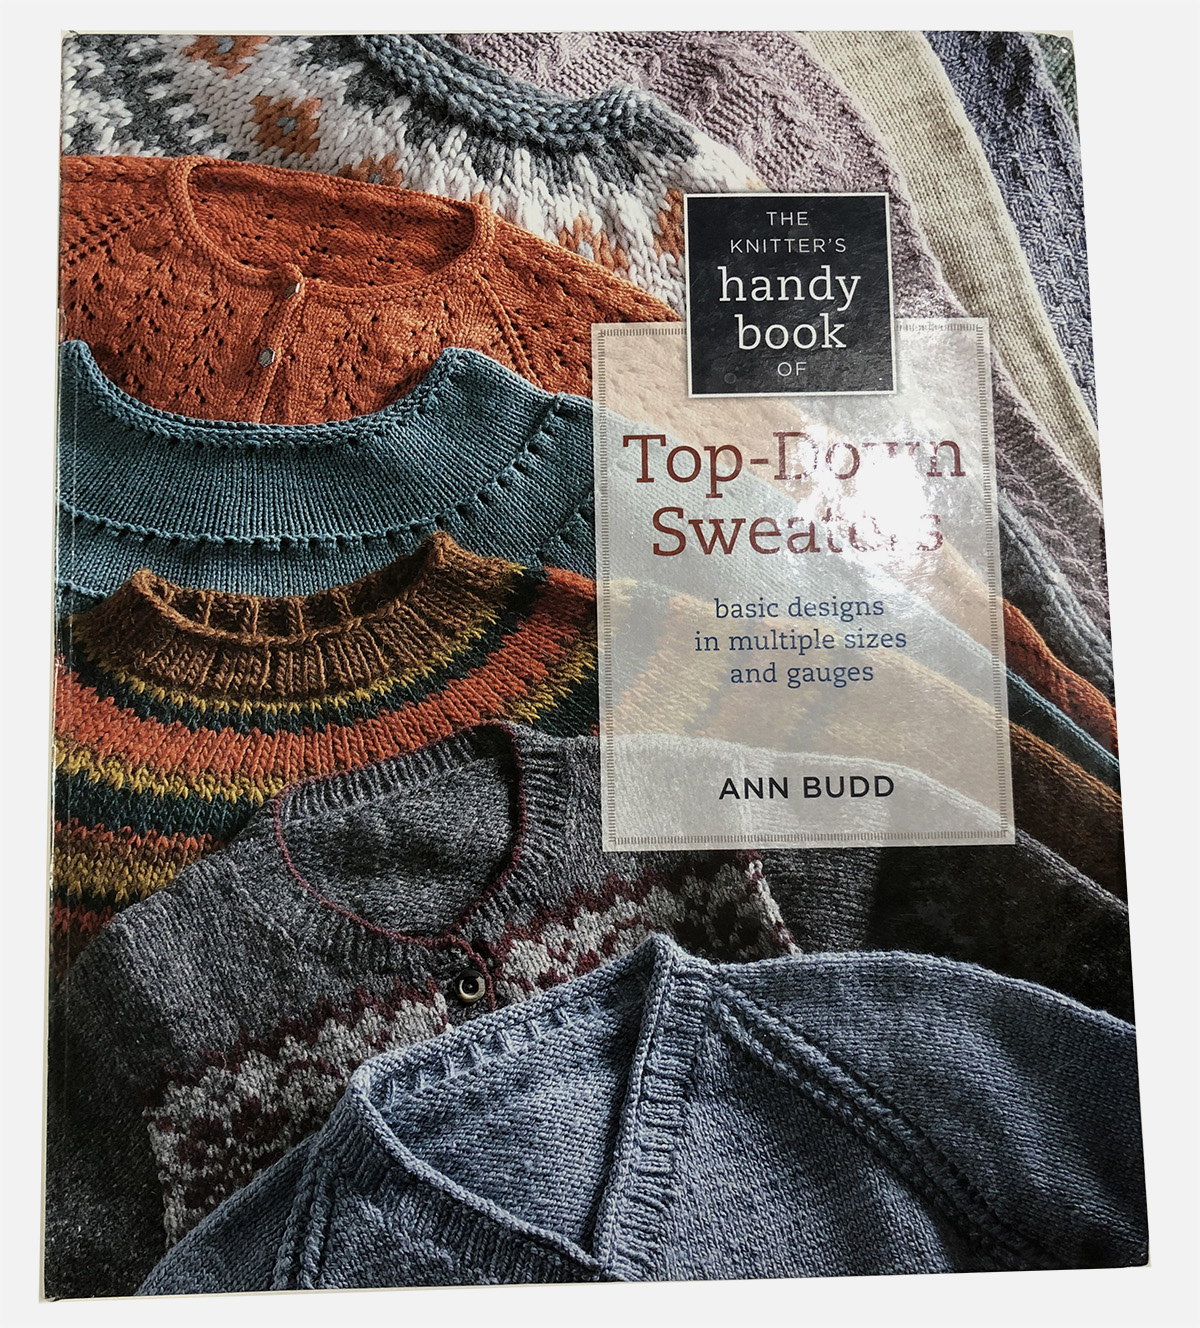 2012 The Knitter's handy book of Top Down Sweaters